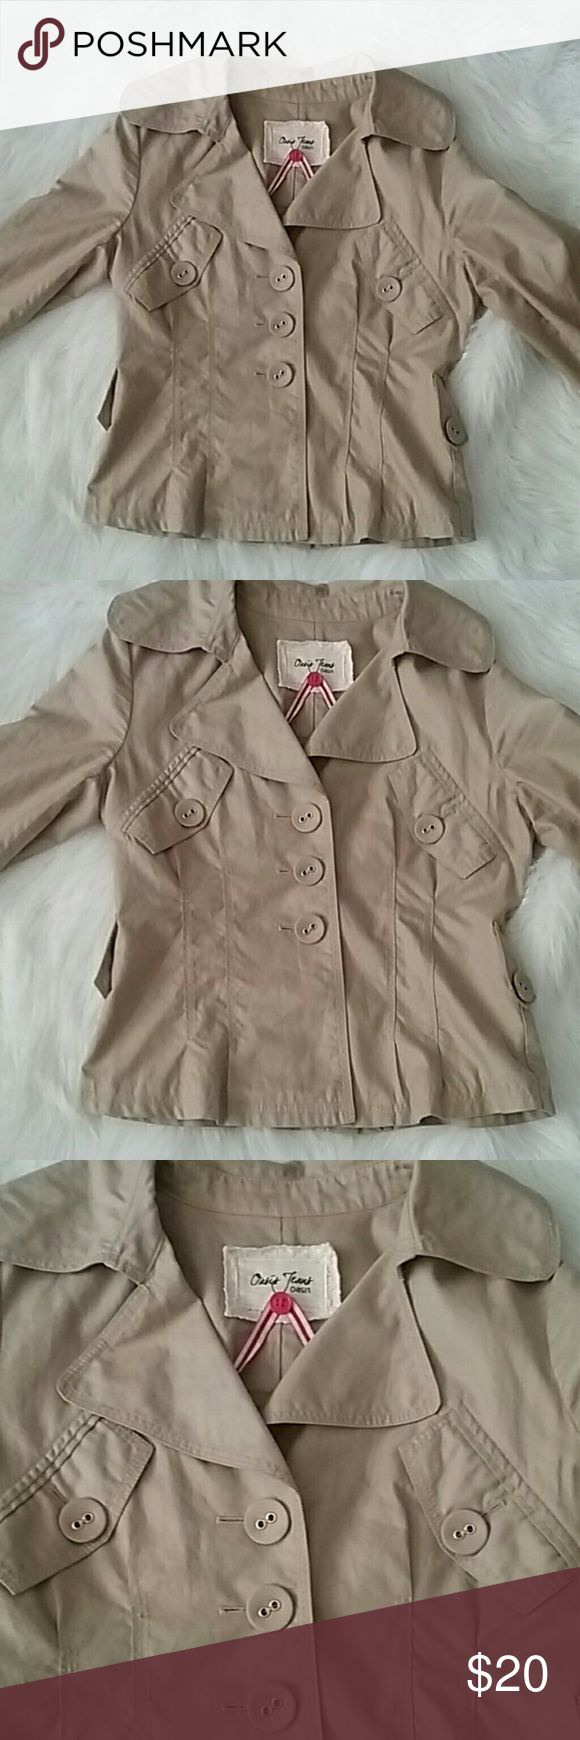 Very cute khaki short jacket large buttons Very nice 100% cotton jacket with large buttons. Large collar and real pockets in the front.  The jacket is very light and has no lining. There is a small spot on the collar included in the pictures. The buttons remind me of the Poshmark logo lol! Oasis Jeans Jackets & Coats Blazers